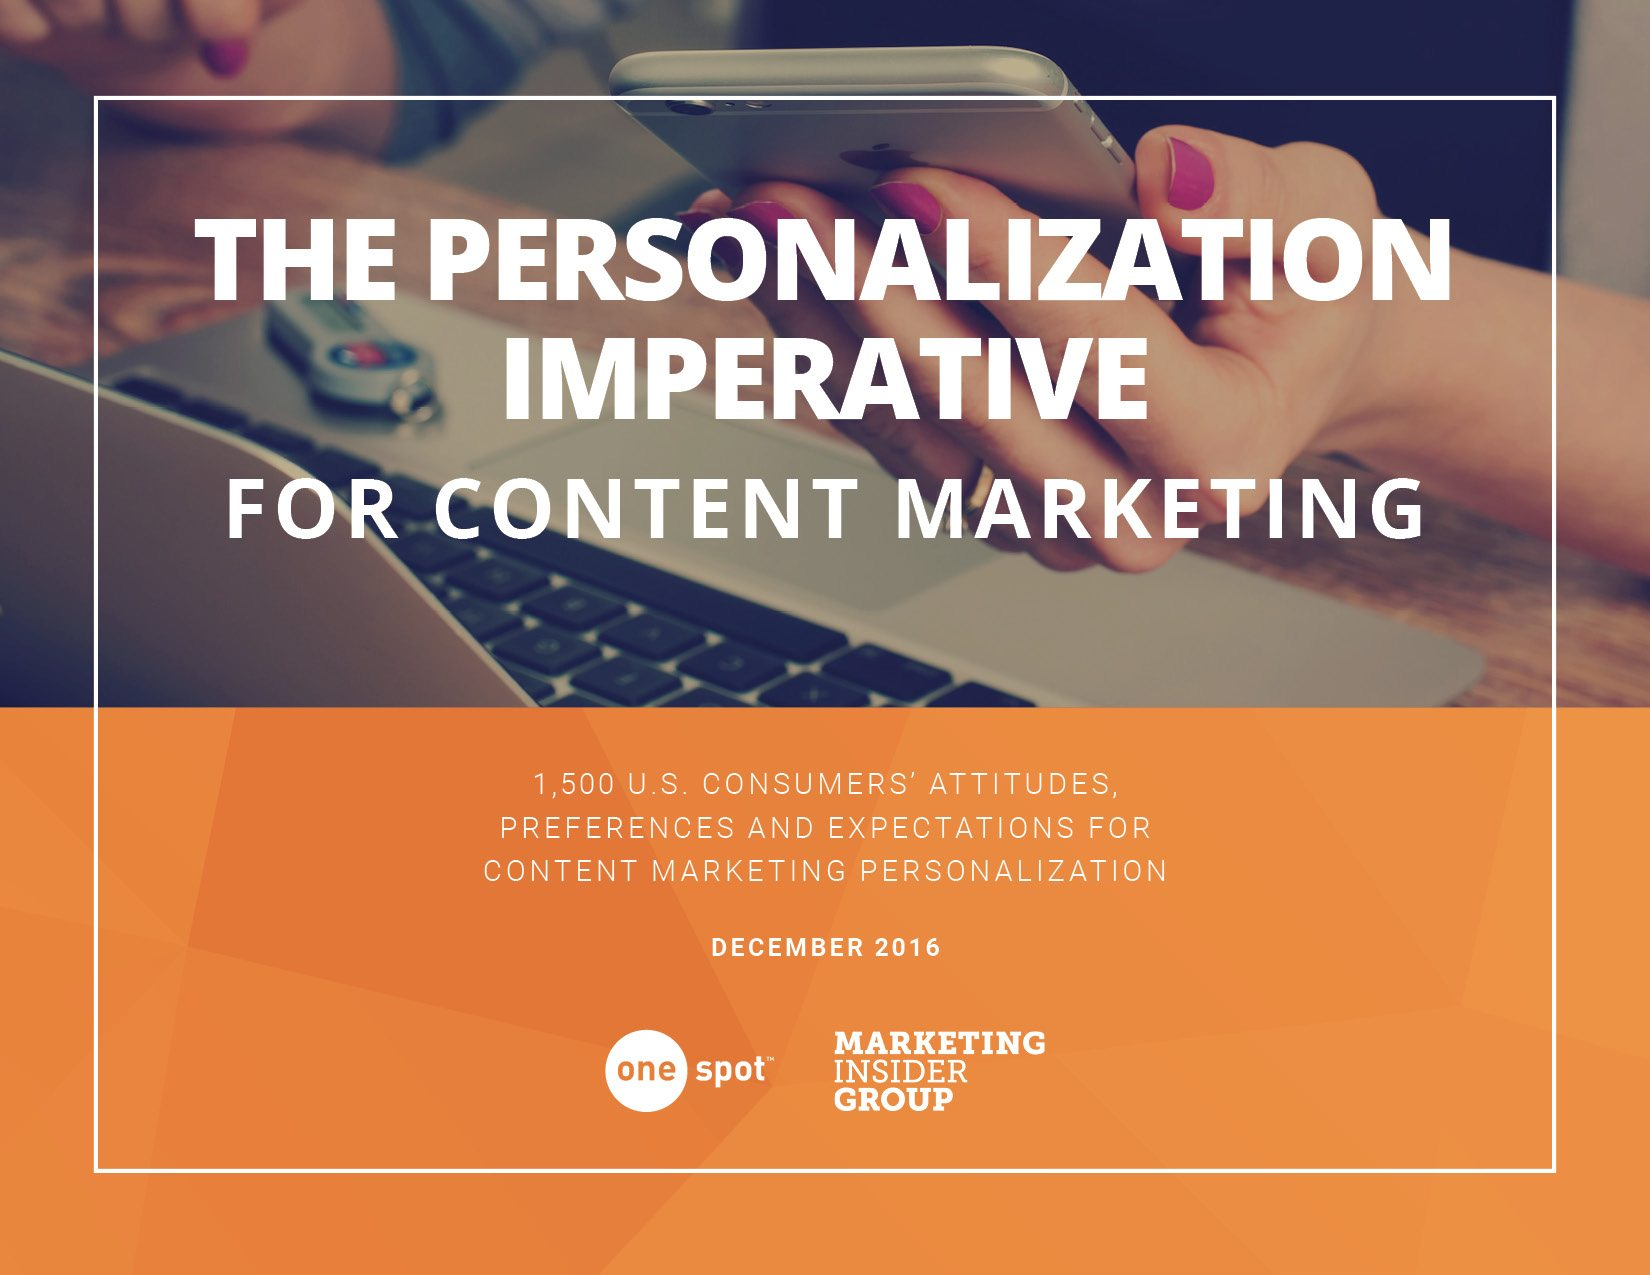 content marketing personalization imperative